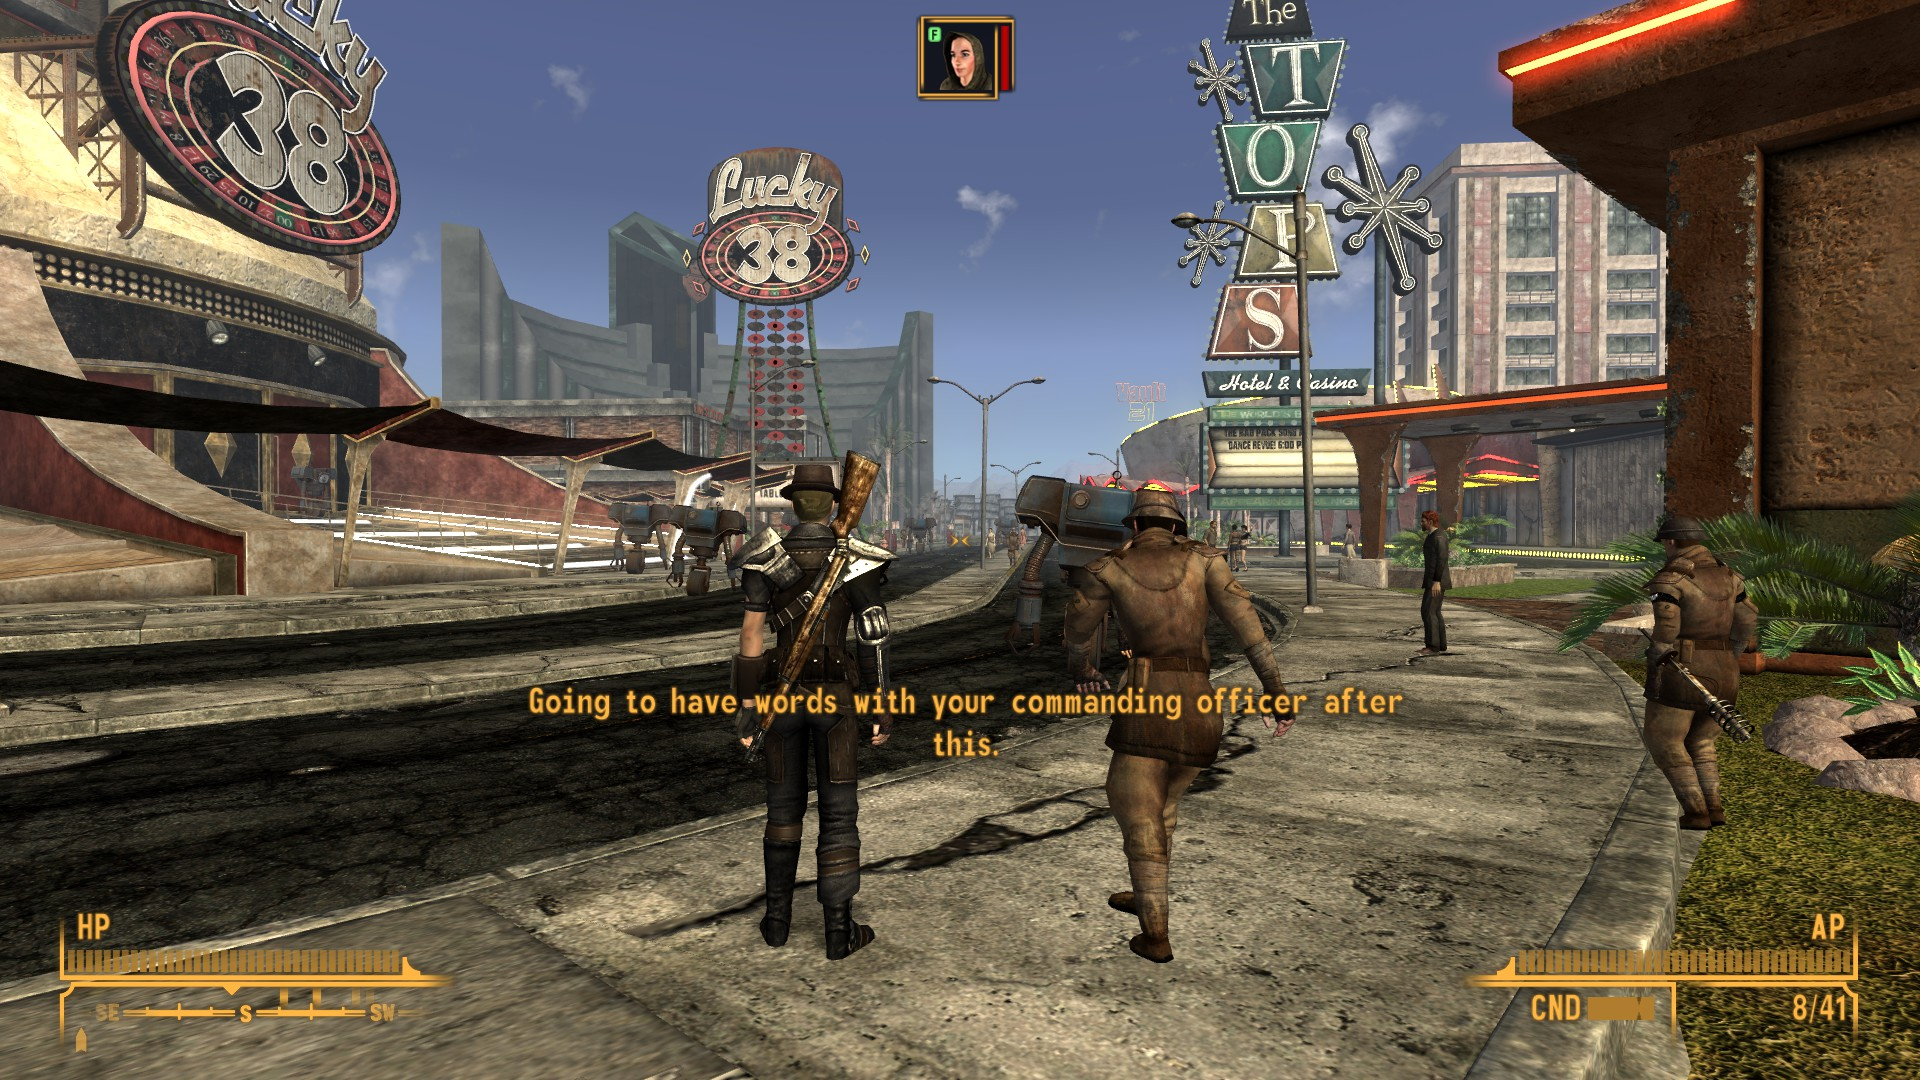 Steam Community :: Guide :: New Vegas Modding Guide